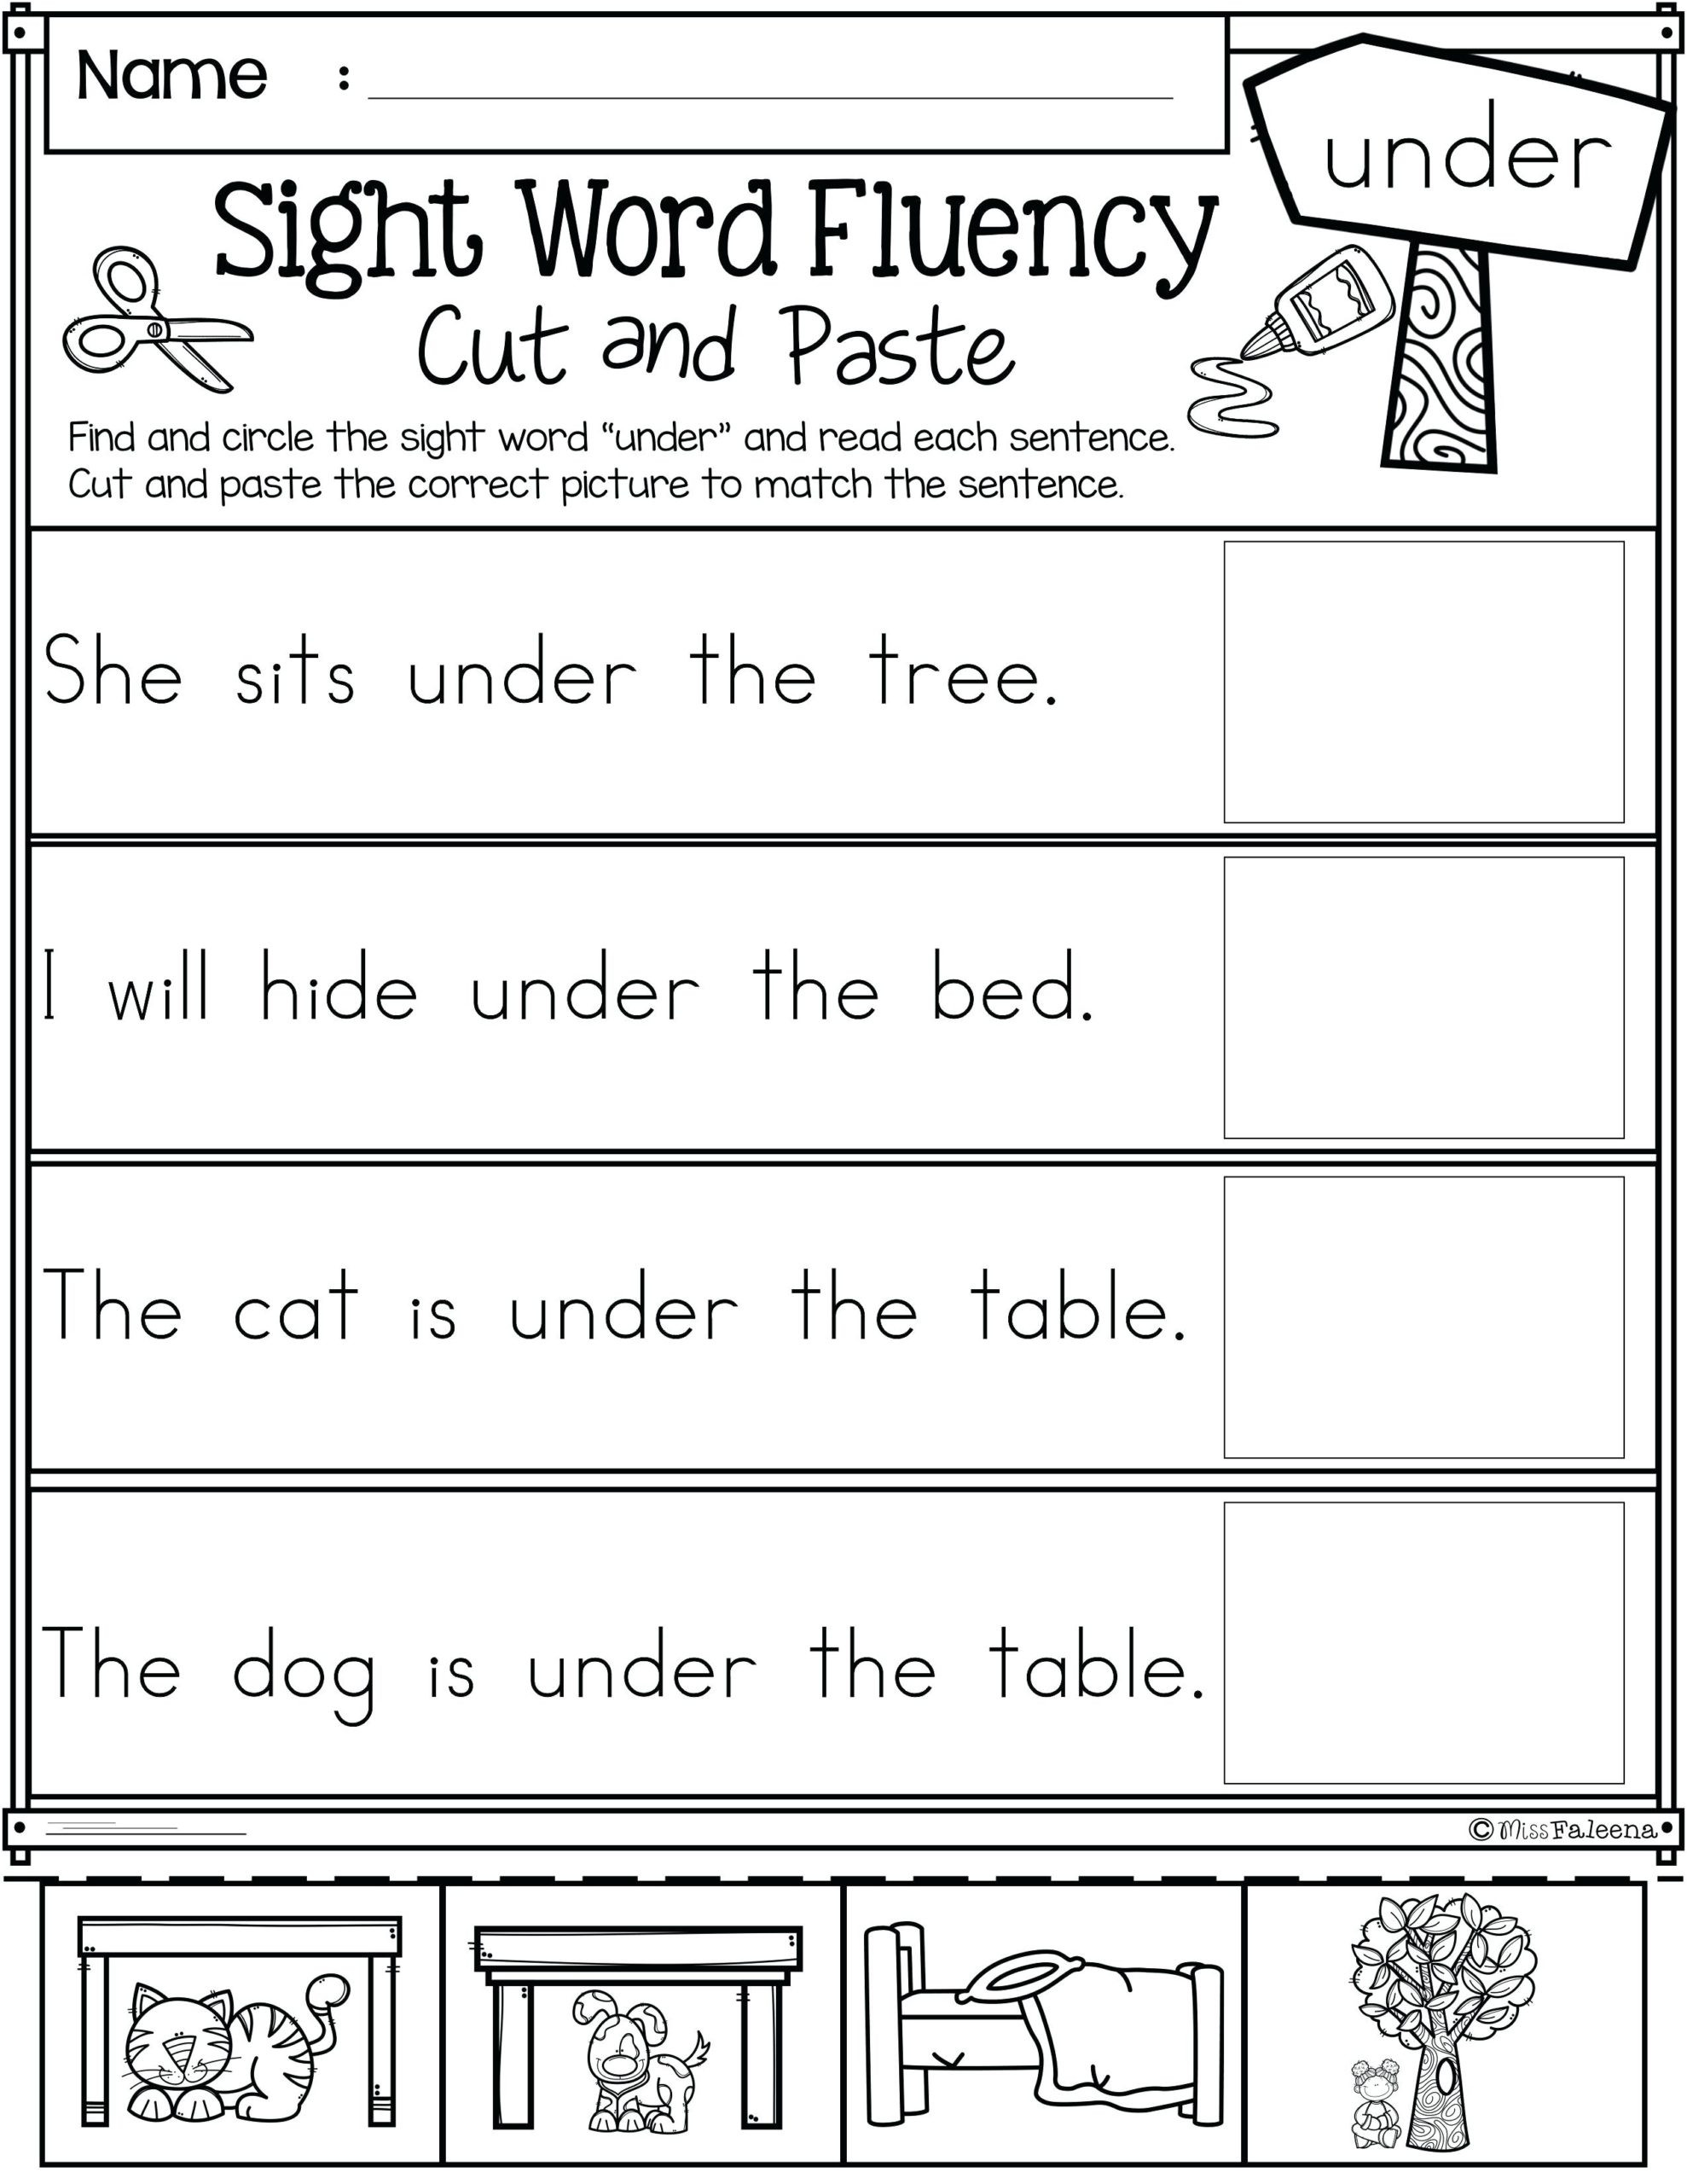 Number Sentence Worksheets 2nd Grade Math Worksheet Reading 2ndde Games Tutoring Worksheets